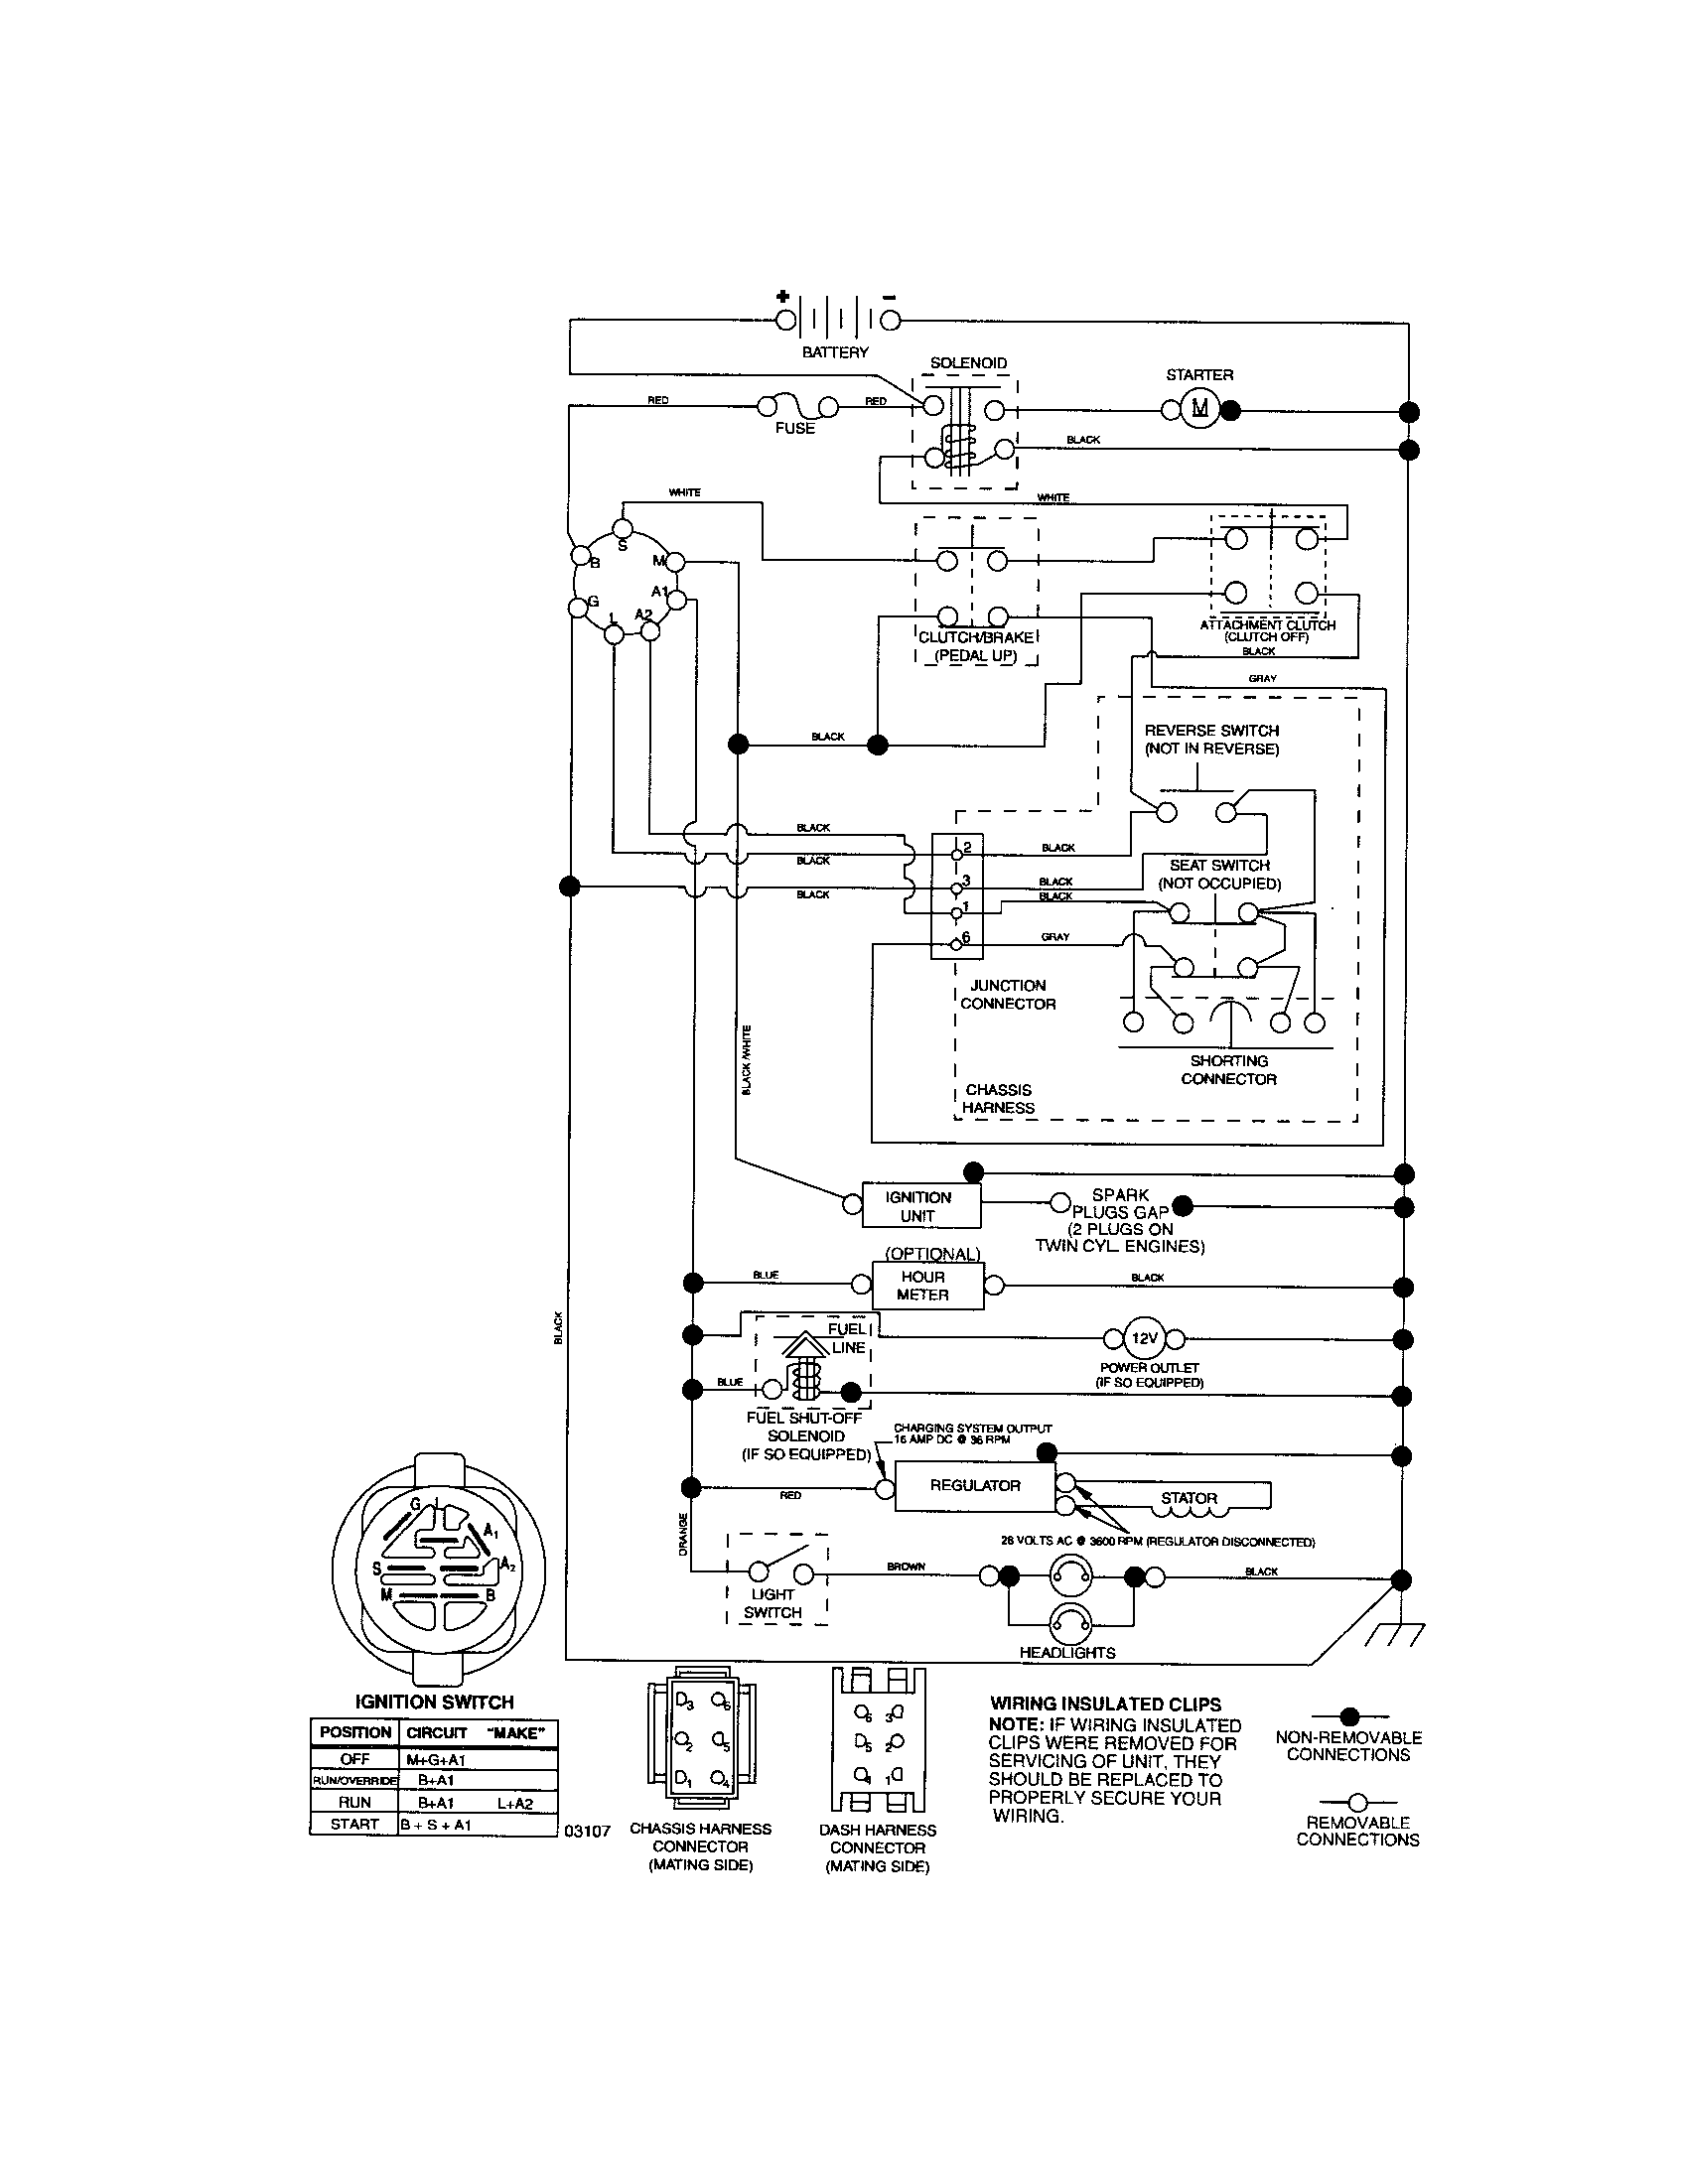 Kubota sel Zero Turn Mowers Wiring Diagram 2002 - House Wiring ... on kubota parts, kubota rtv900 front axle assembly, kubota l2900 front axle diagram, kubota ssv, kubota l2600, kubota ignition diagram, kubota z725, kubota cooling system diagram, kubota farm tractors, kubota oil pressure sending unit, kubota oil capacities, kubota hydraulics diagram, kubota manuals, kubota r630, kubota schematics, kubota zero turn mowers, kubota emblem, kubota commercial mowers, kubota f3080, kubota serial number location,